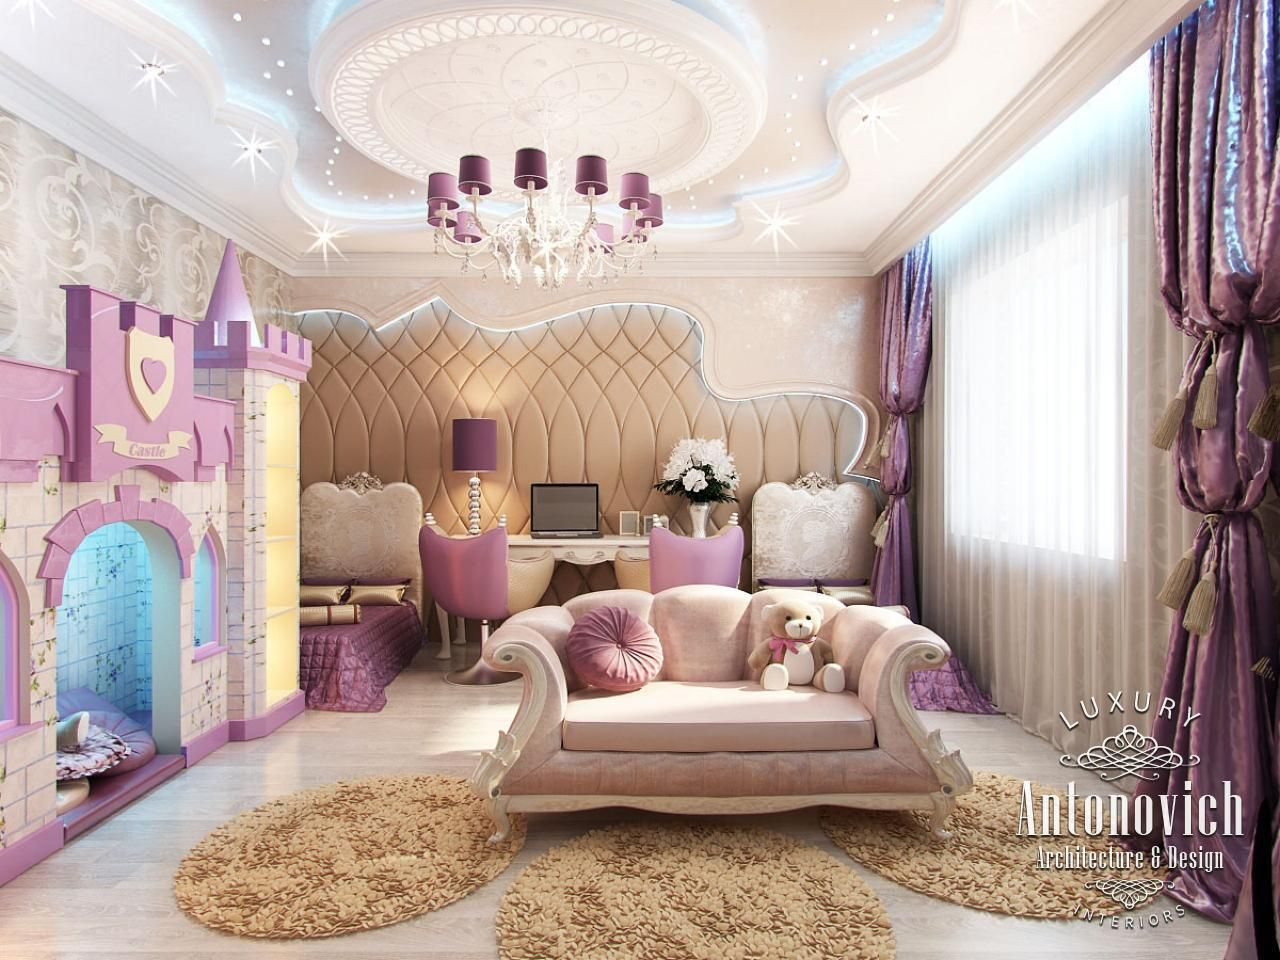 Luxury antonovich design 10 girly home decor and interior themes chambre fille chambre d